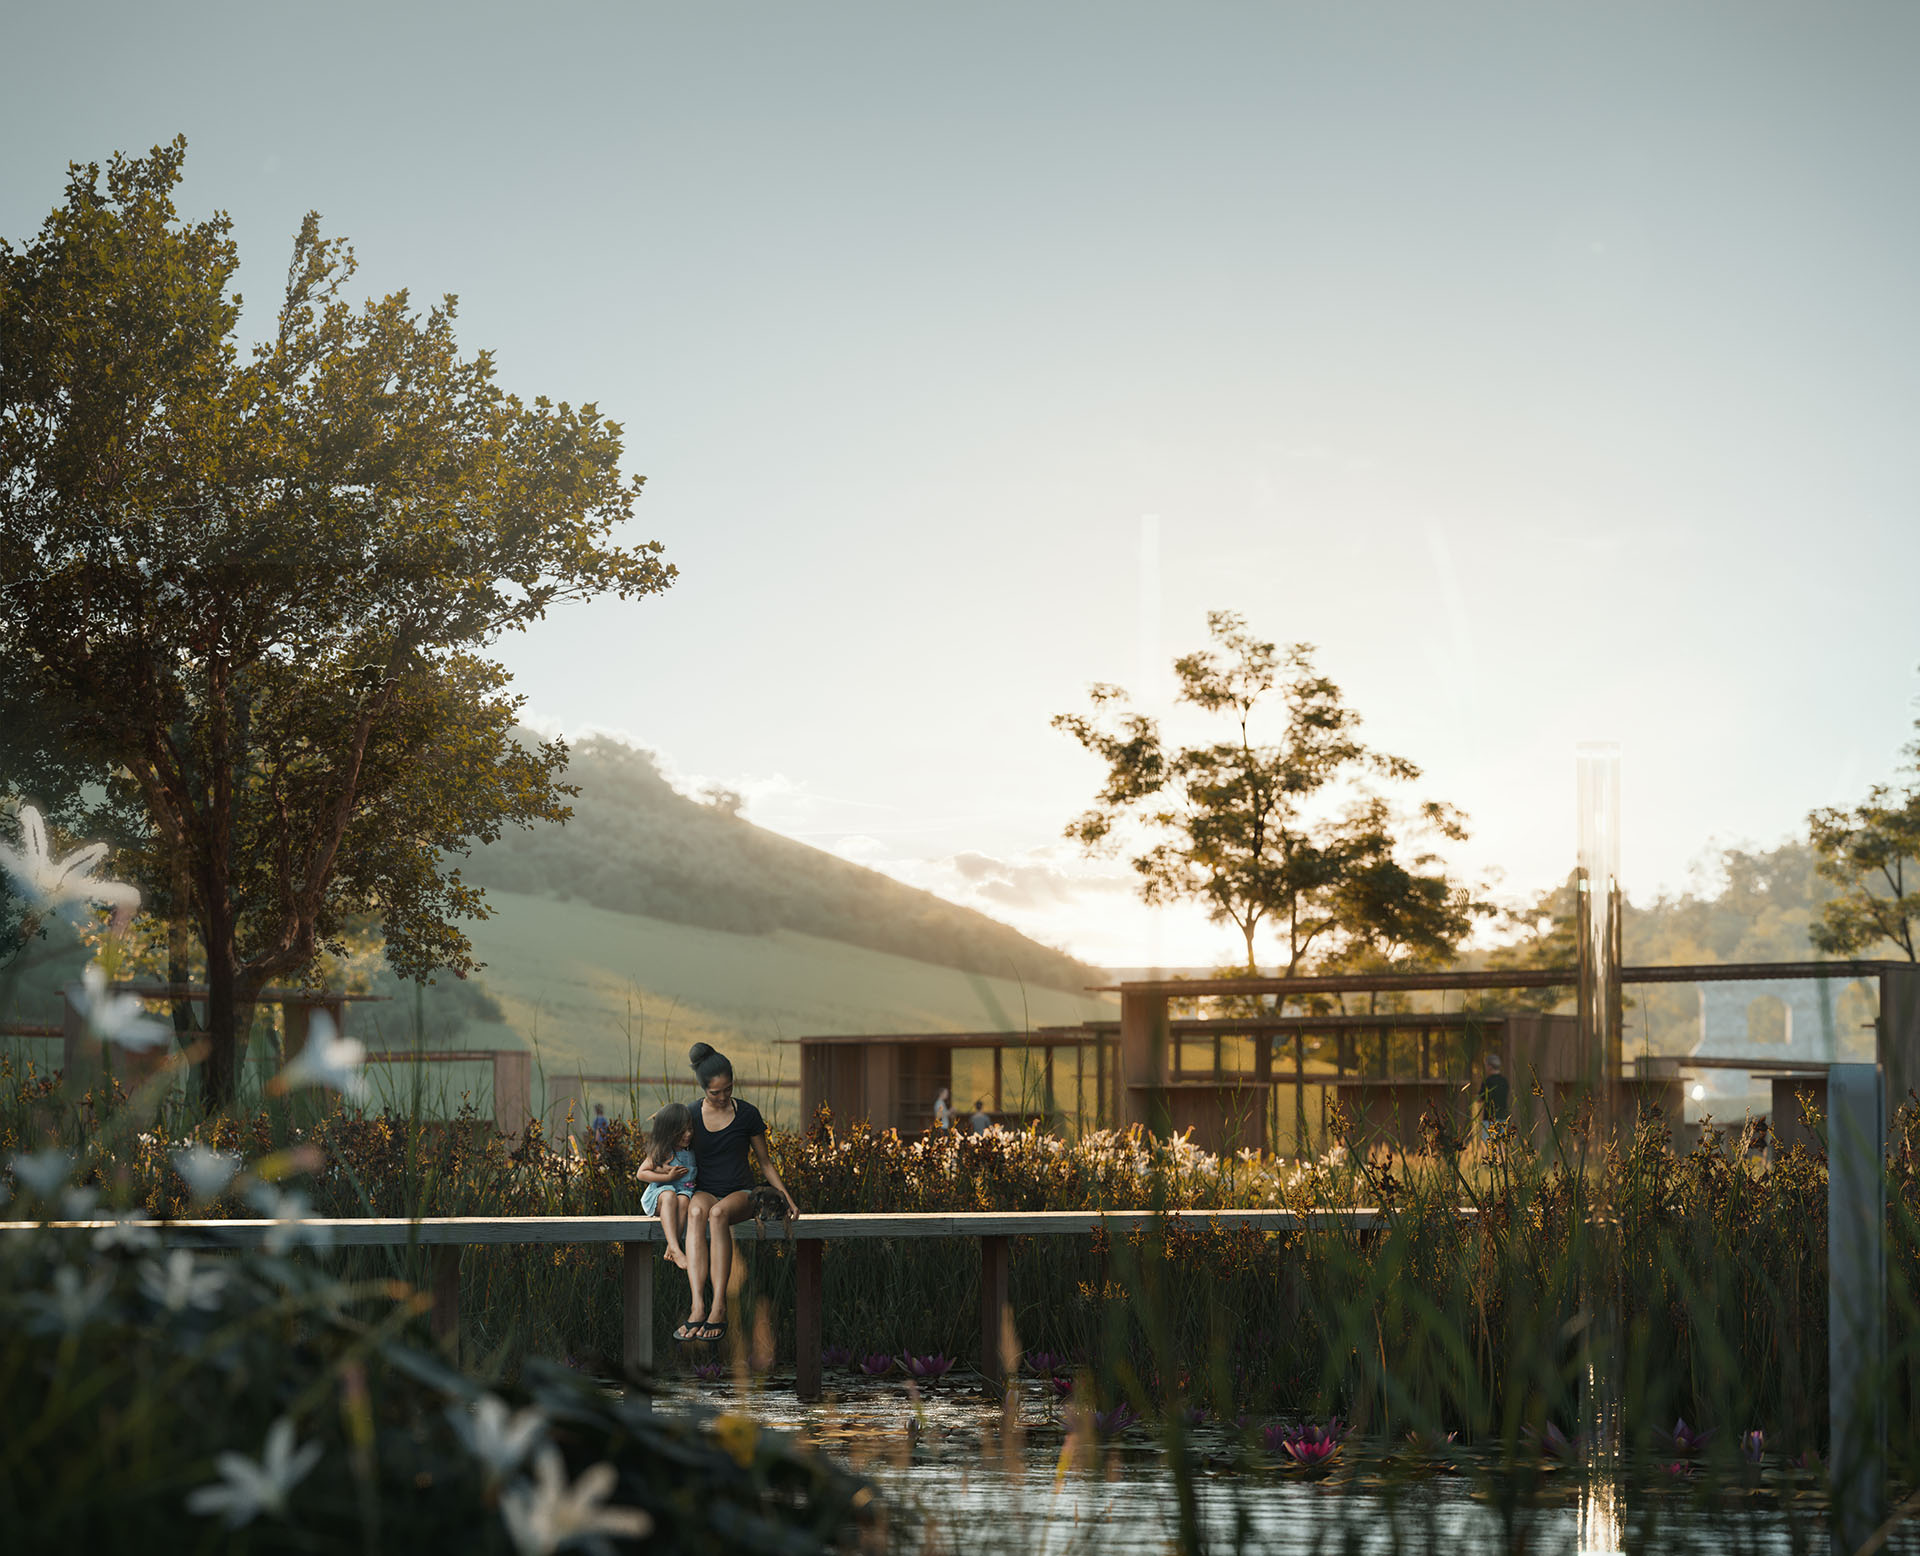 render_ivabox_CAPS_izmir_meles_Competition_3